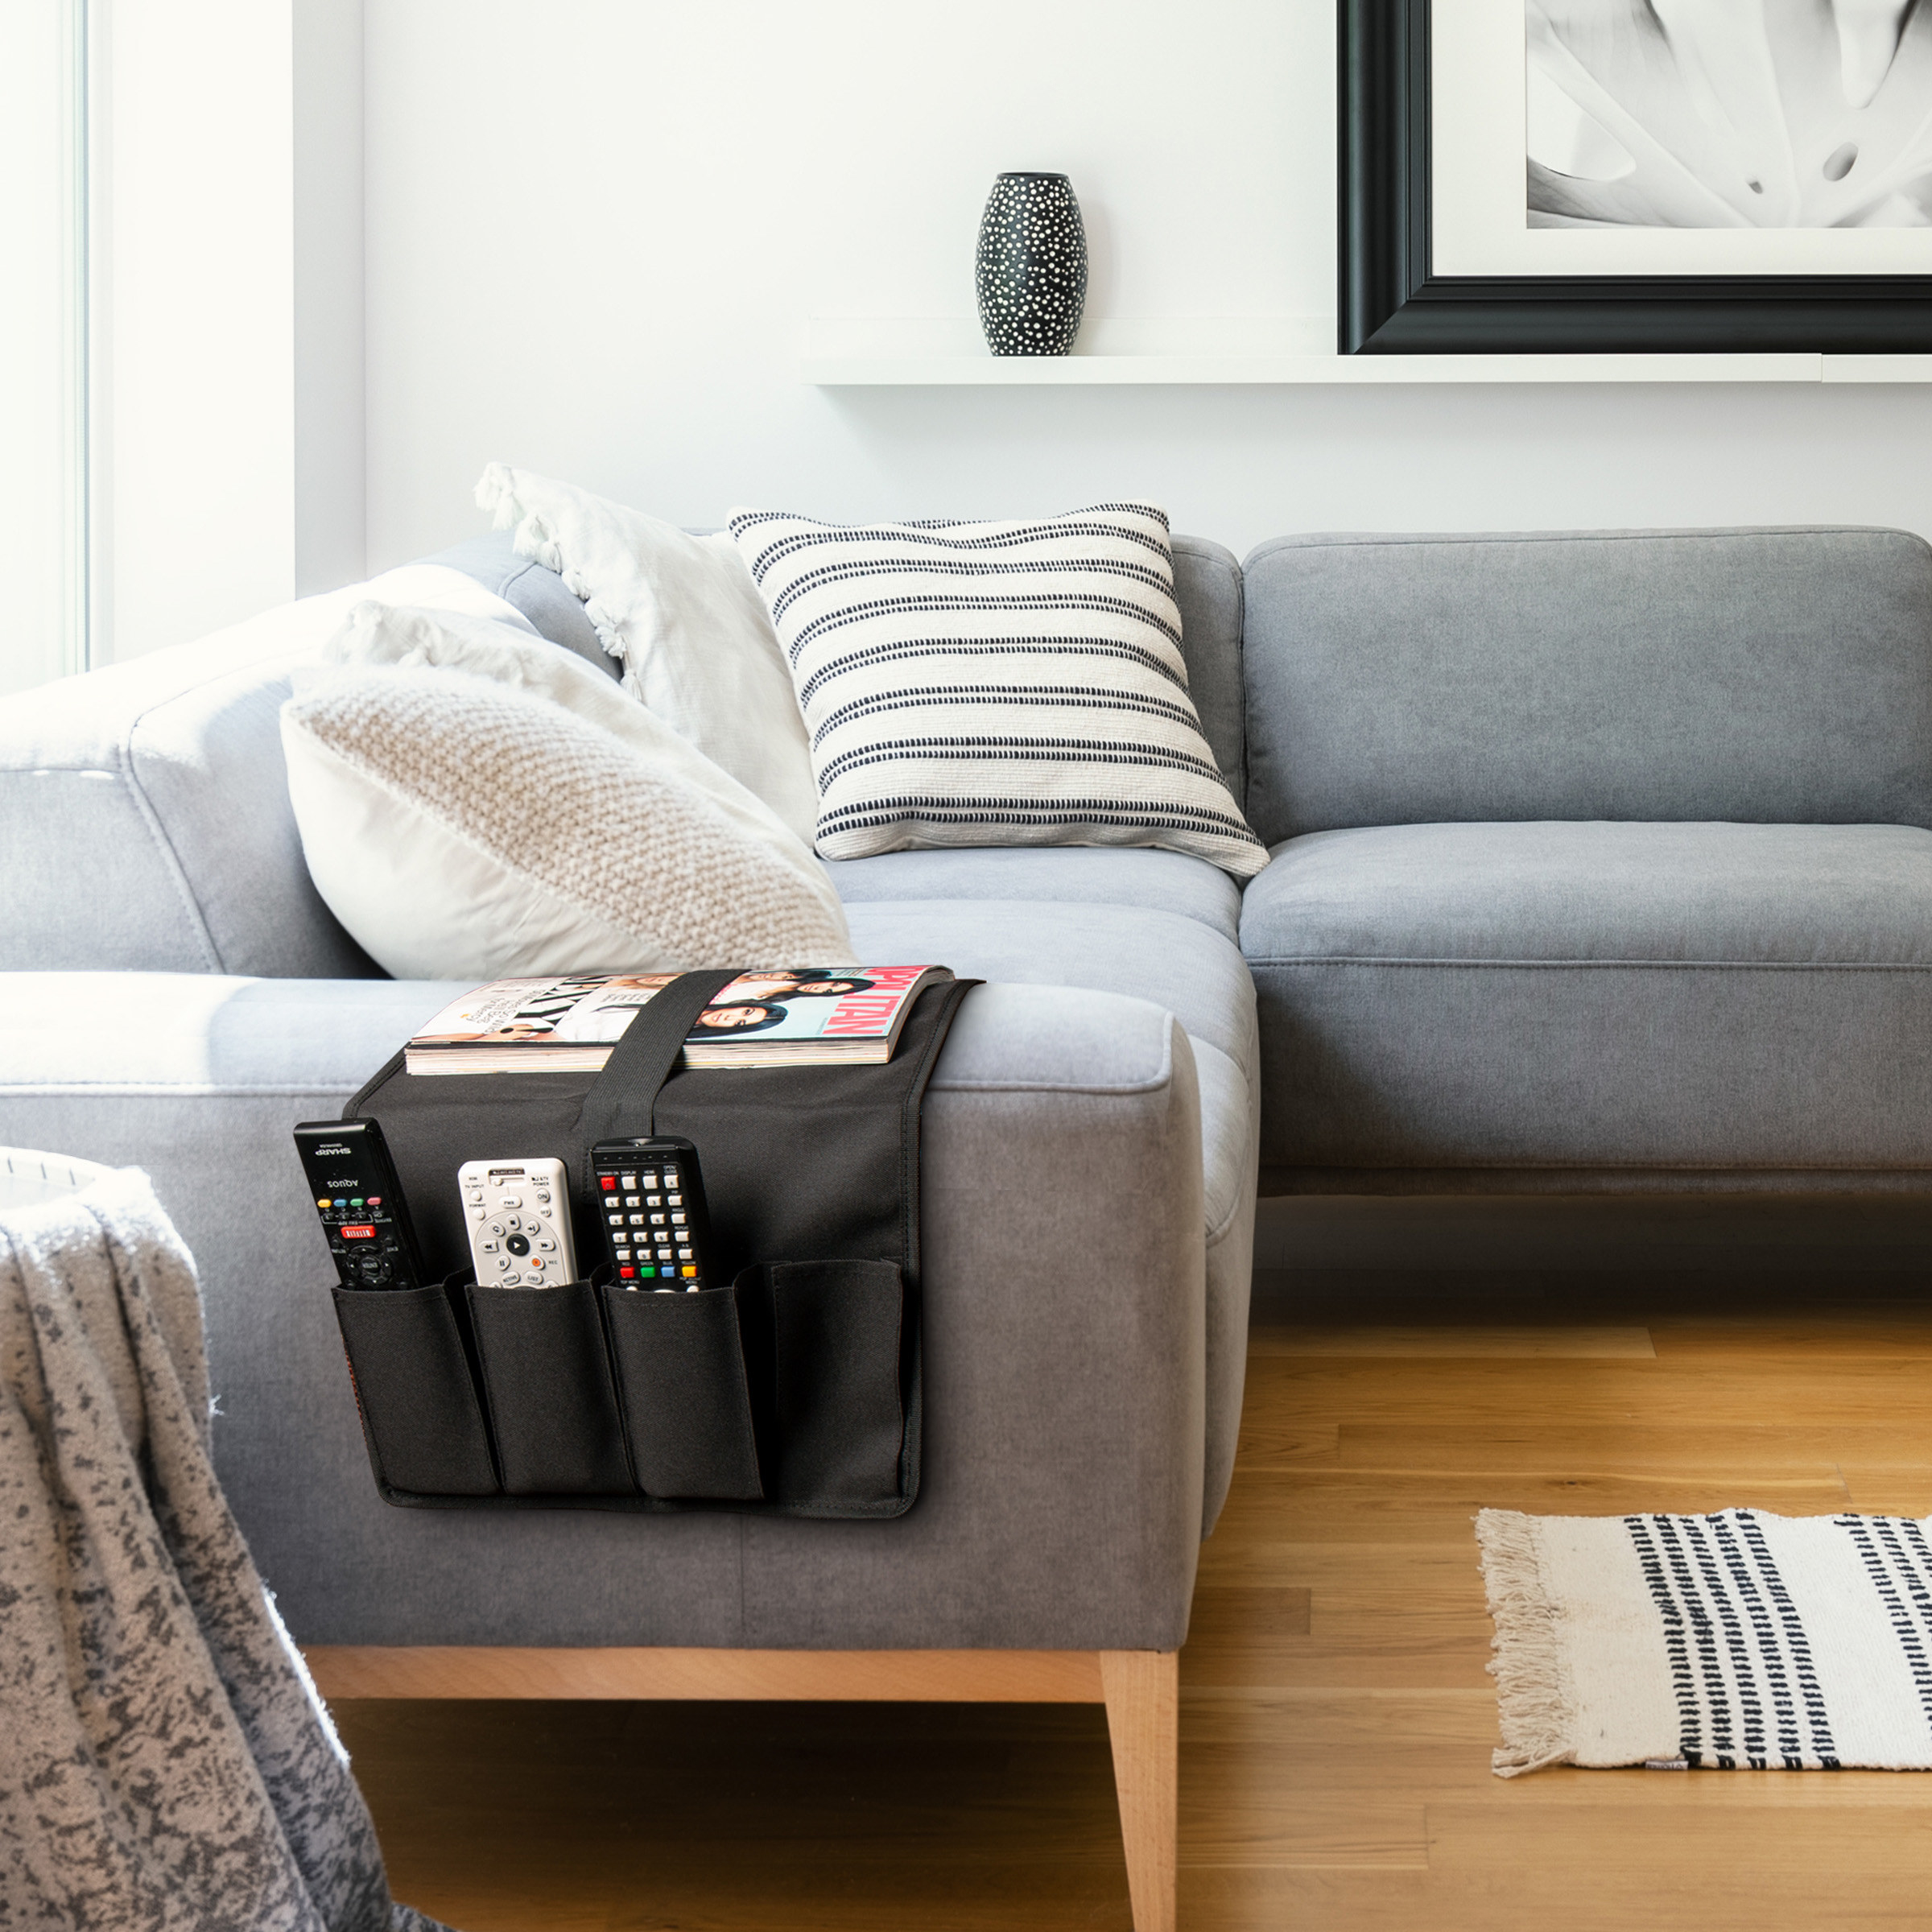 Remote caddy is resting on the arm of a couch, holding three remotes and a magazine